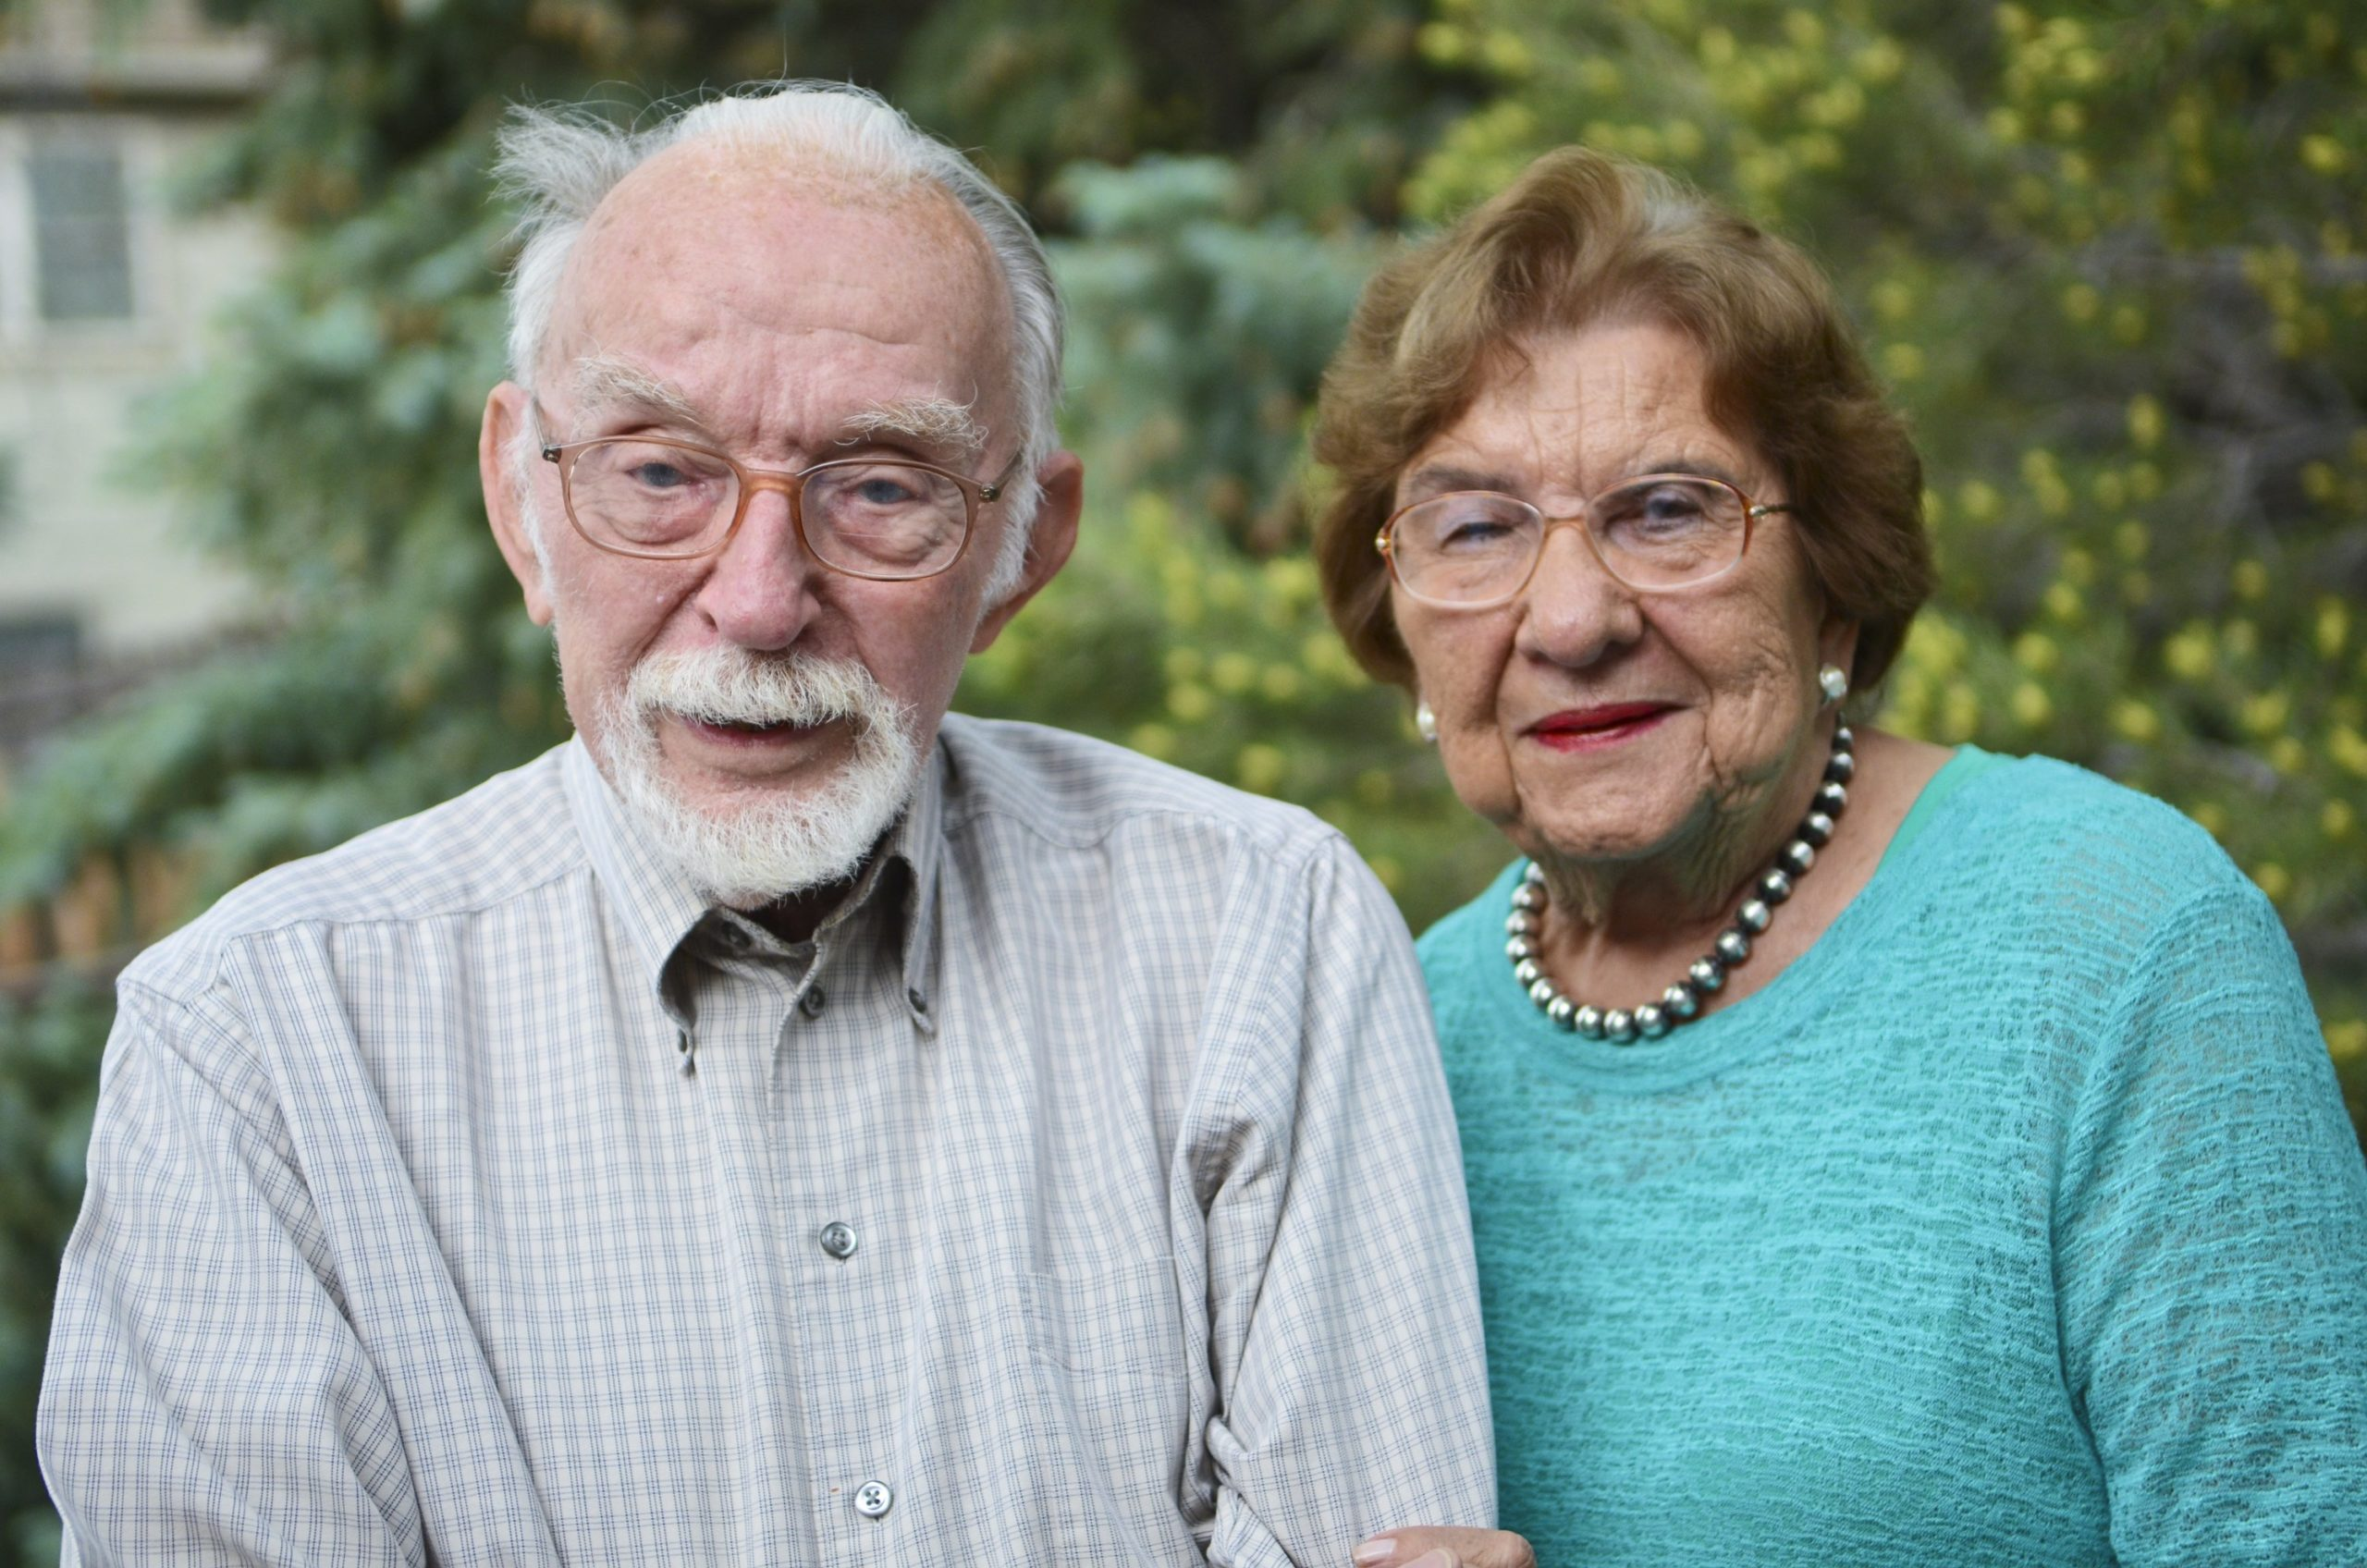 An elderly man and woman link arms and pose for the camera.